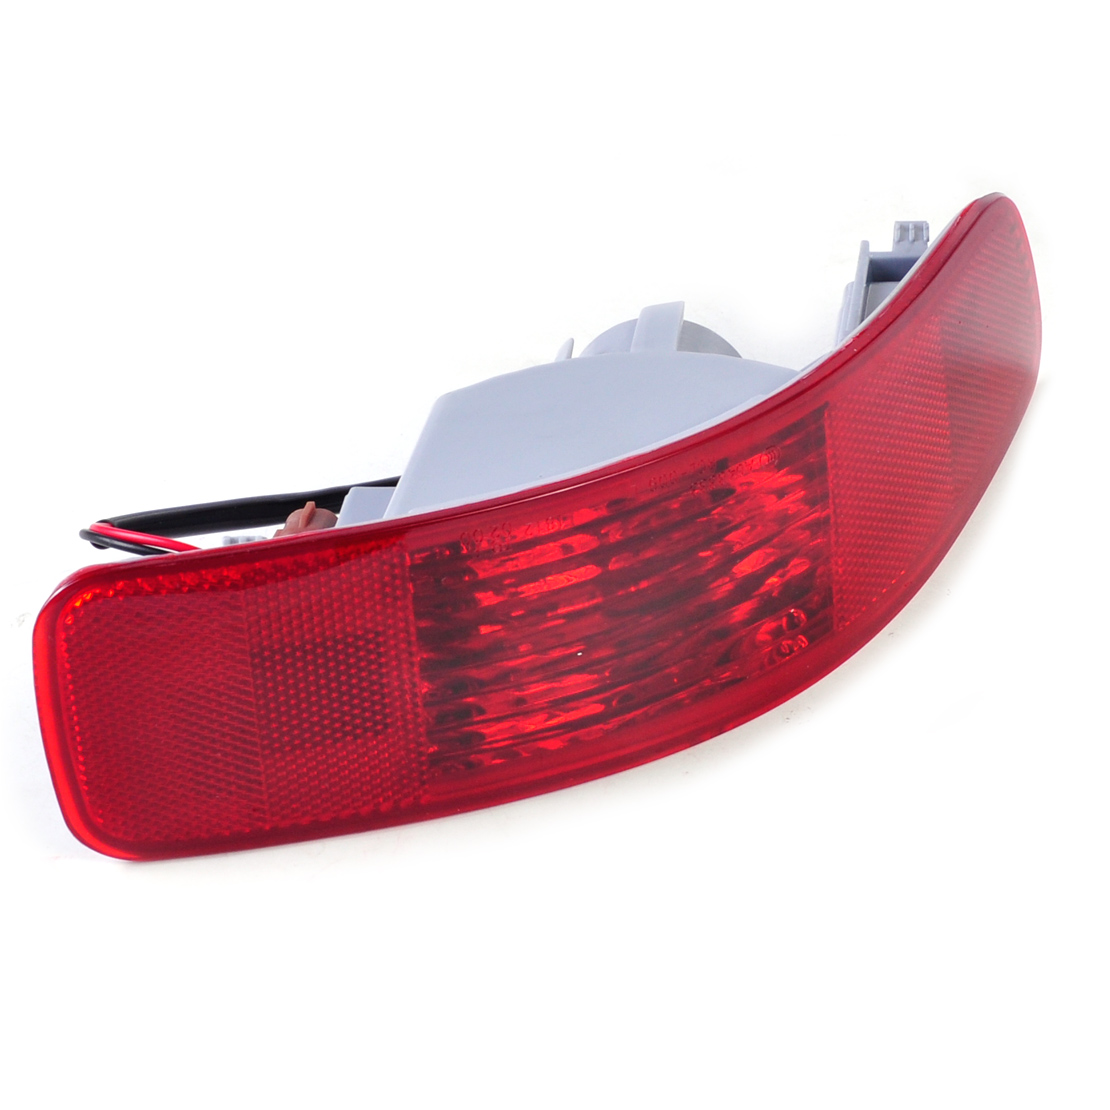 beler Rear Left Side Fog Light Bumper Lamp Reflector SL693-LH Fit for Mitsubishi Outlander 2007 2008 2009 2010 2011 2012 2013 beler new high quality abs plastic new front left fog light lamp 9006 12v 51w replacement ma2592113 for mazda 3 2007 2008 2009